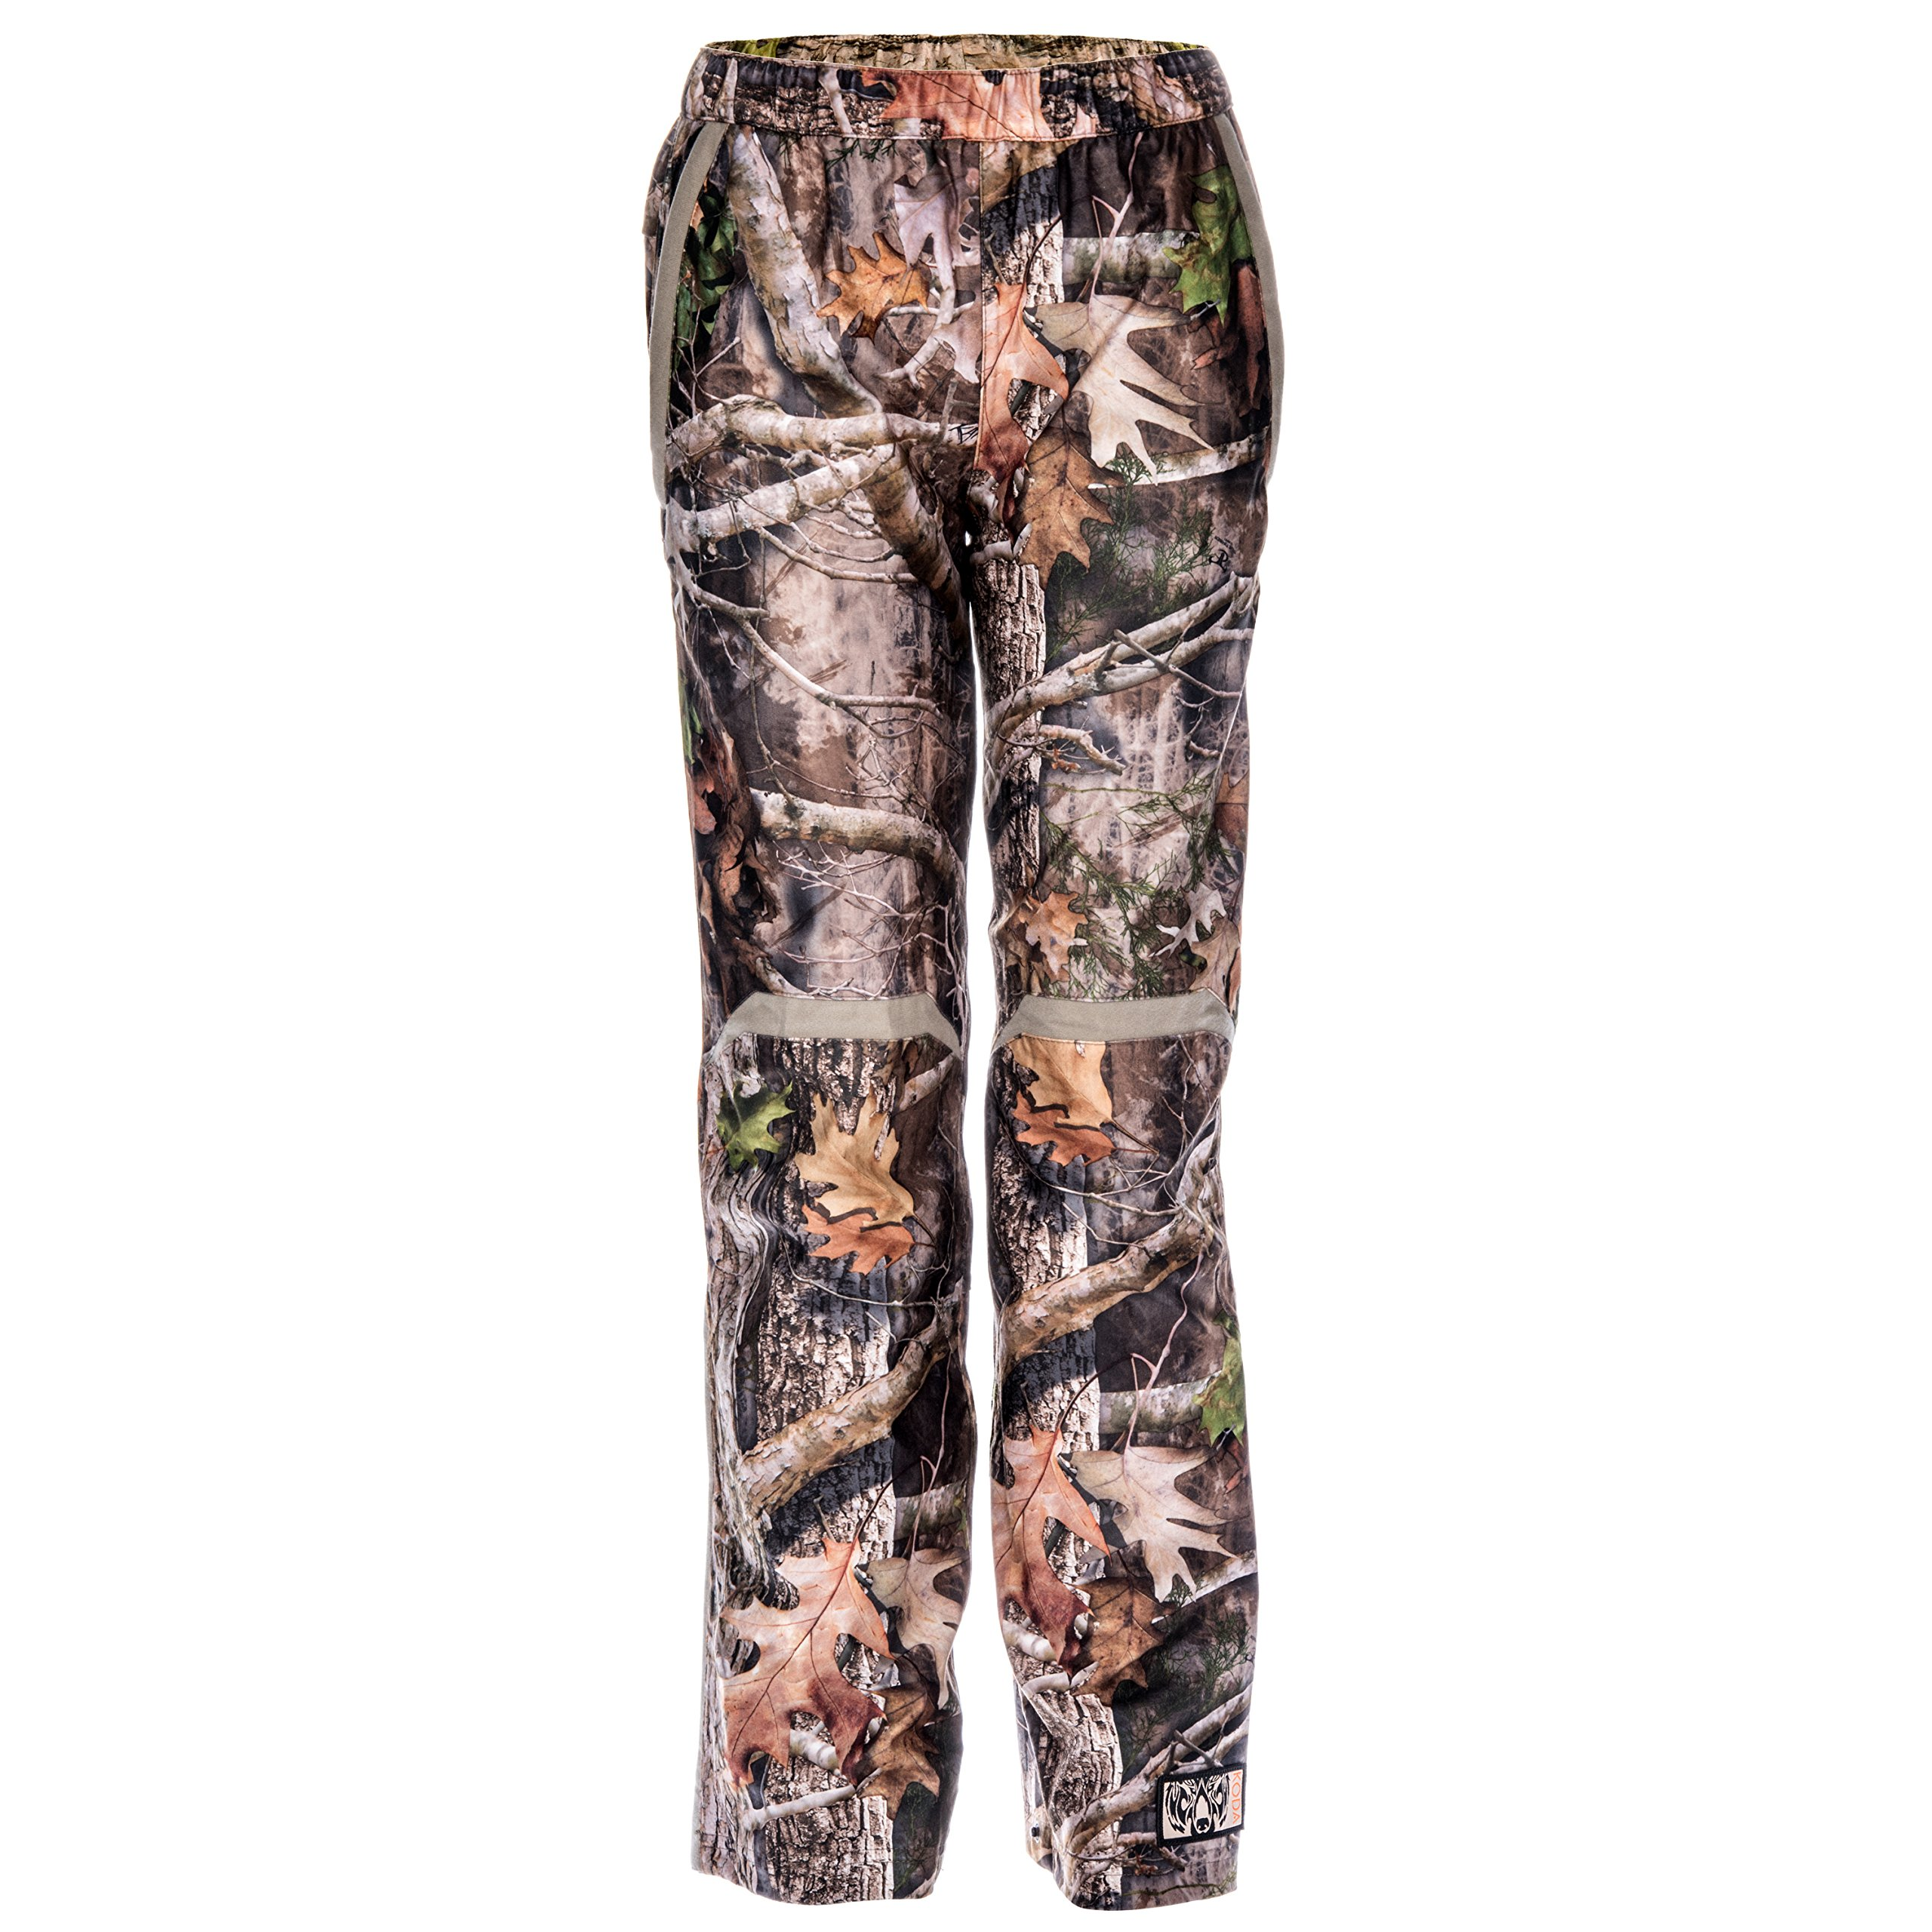 Koda Adventure Gear Kids True Timber Hardshell Camo Hunting Pant, Kanati, S by Koda Adventure Gear